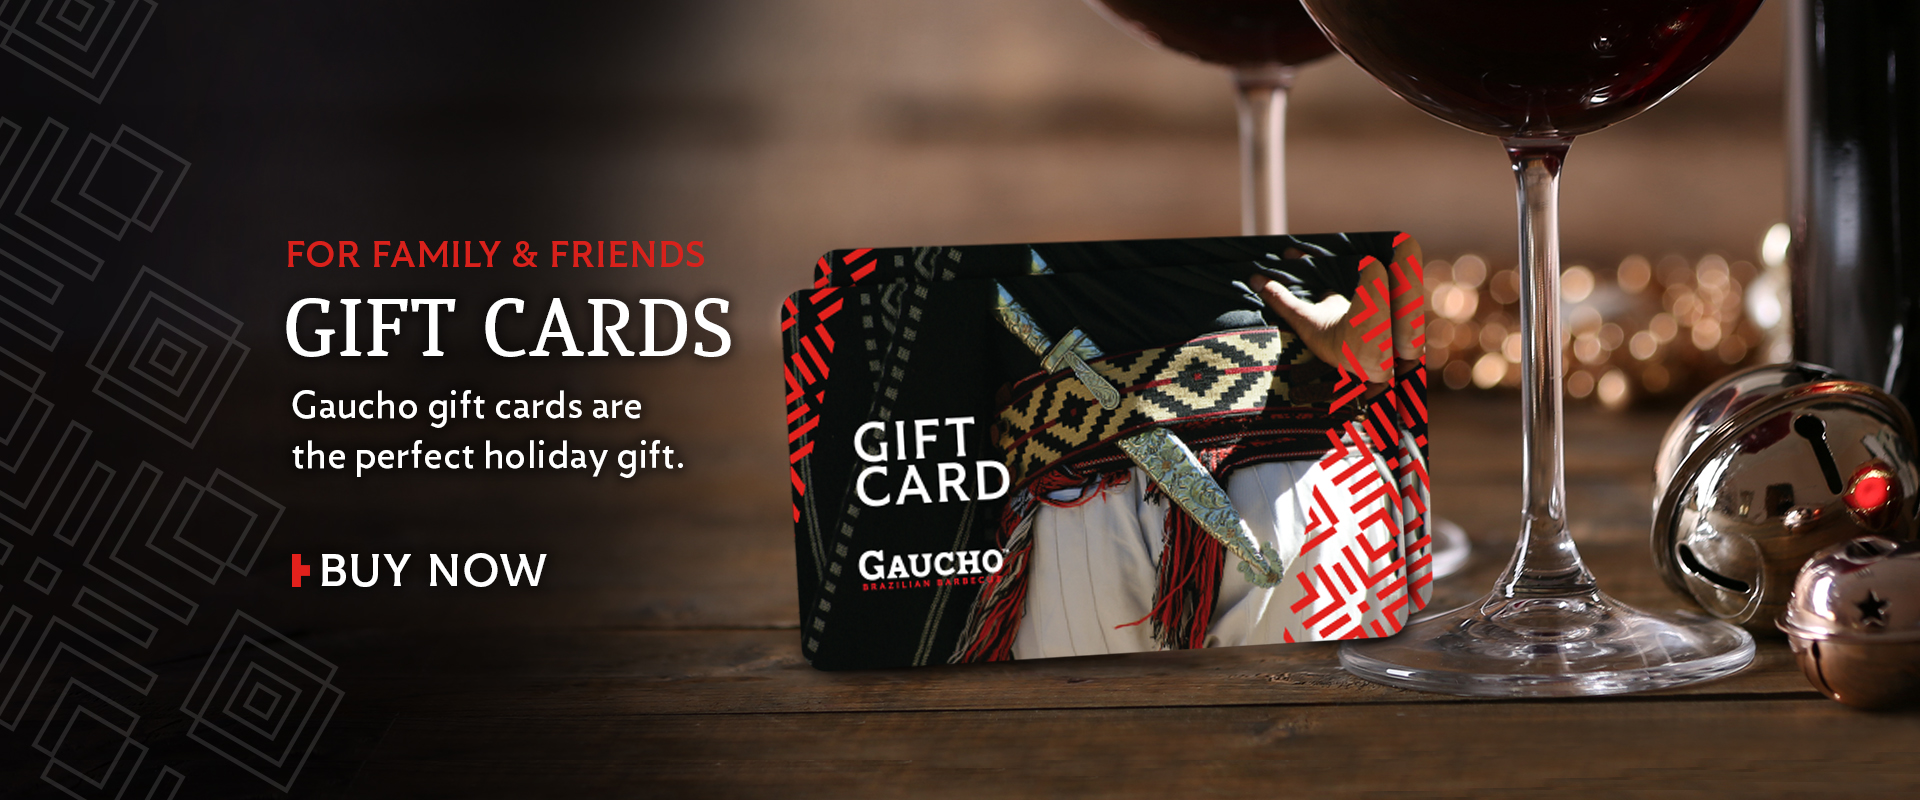 Gaucho Gift Cards